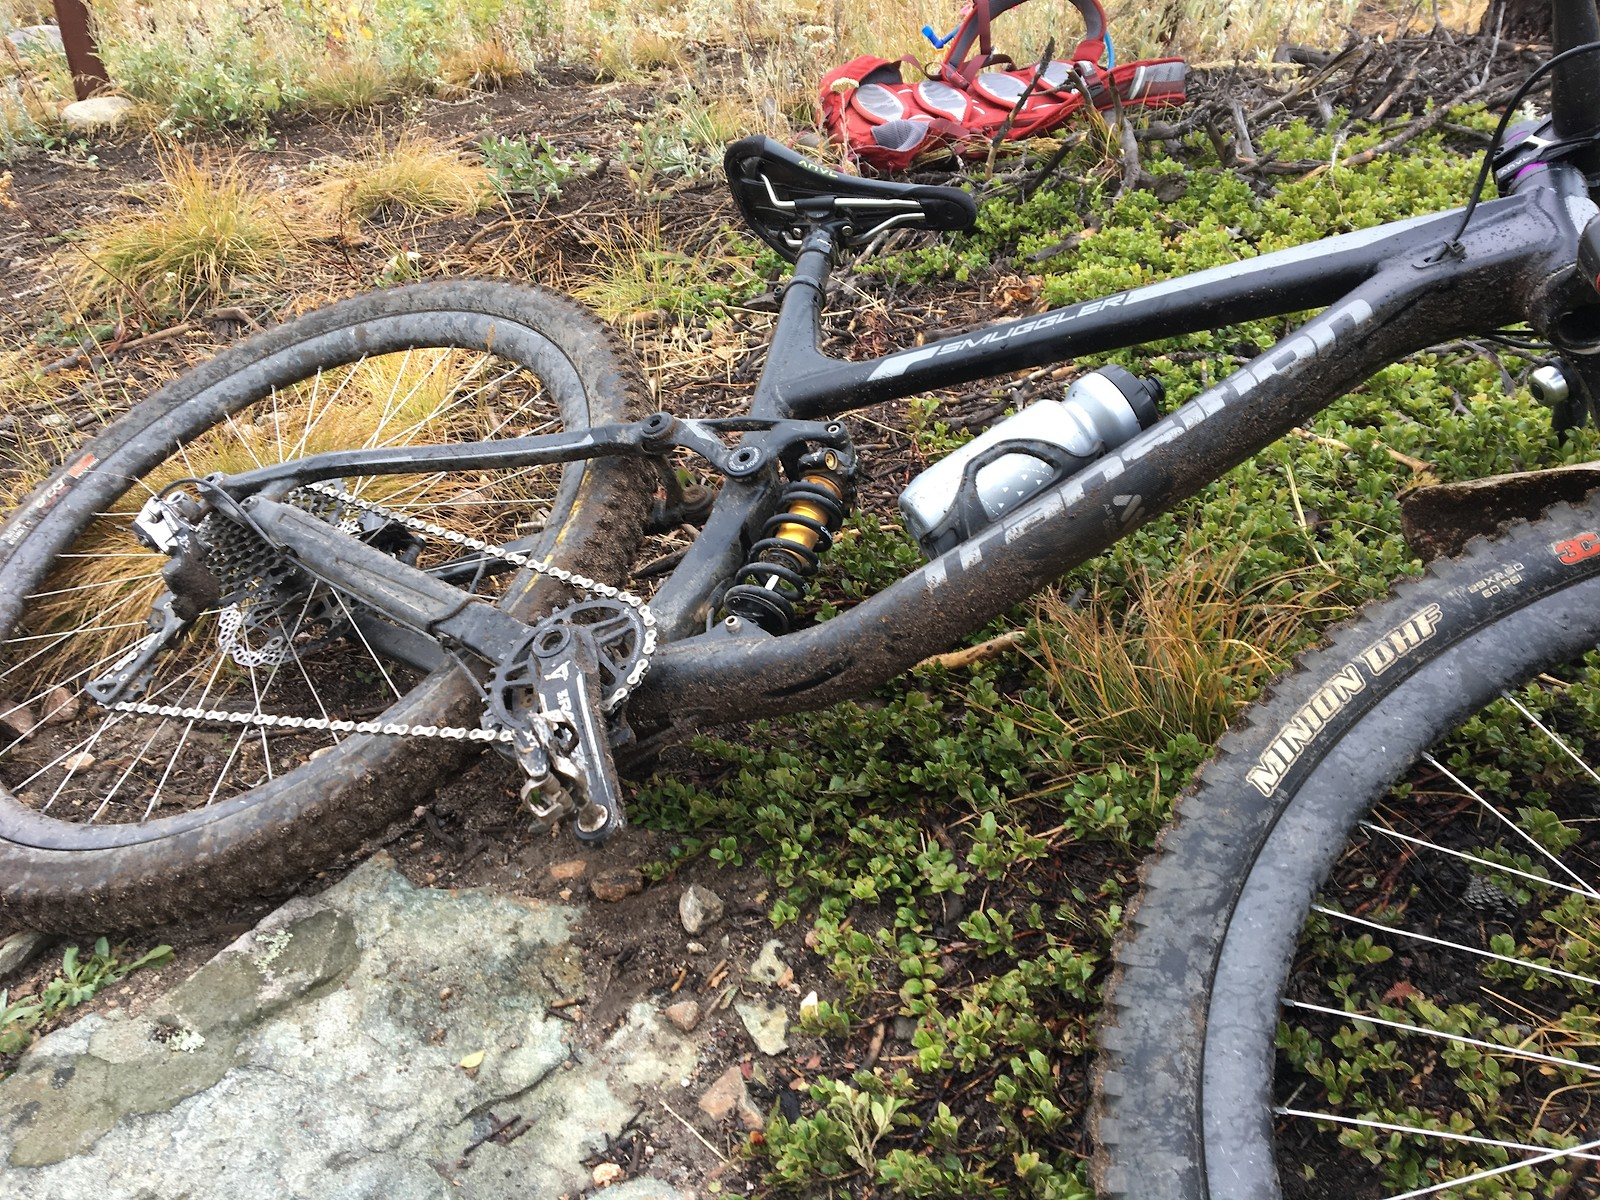 Coil Shock + Trail Bike - The Hub - Mountain Biking Forums